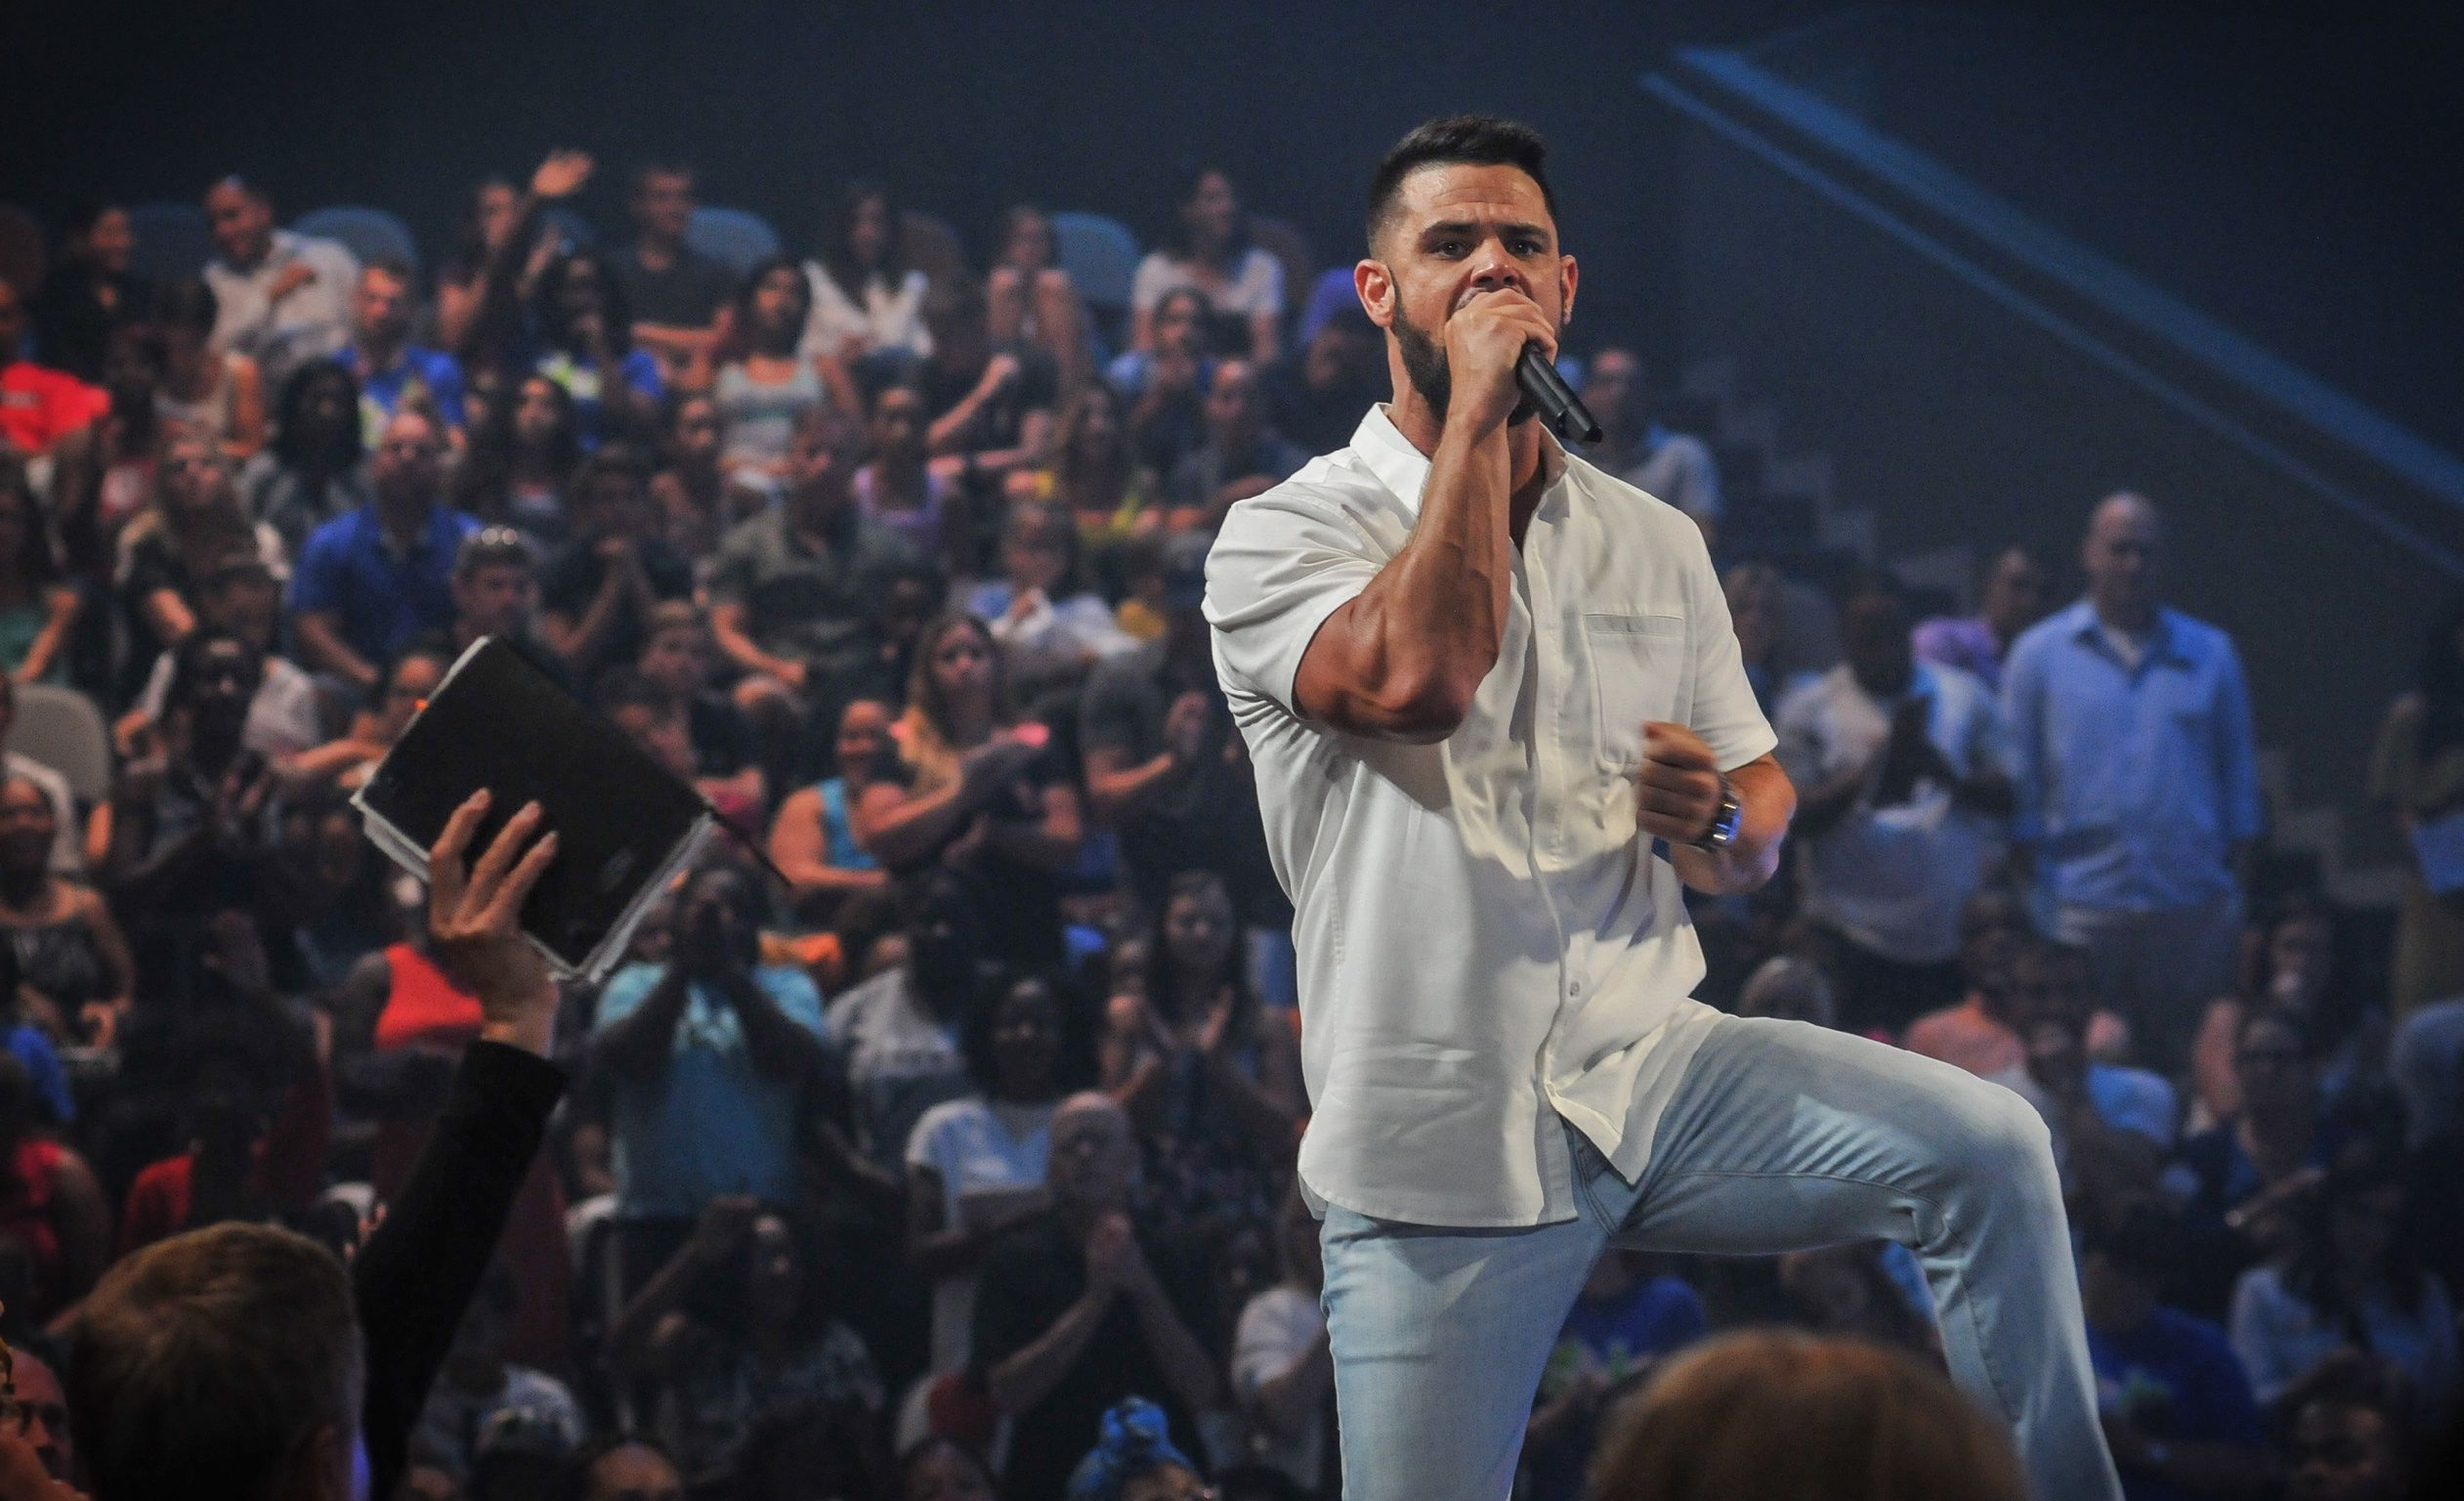 Elevation Church Bible Reading Plan : Listen to sermons from steven furtick pastor of elevation